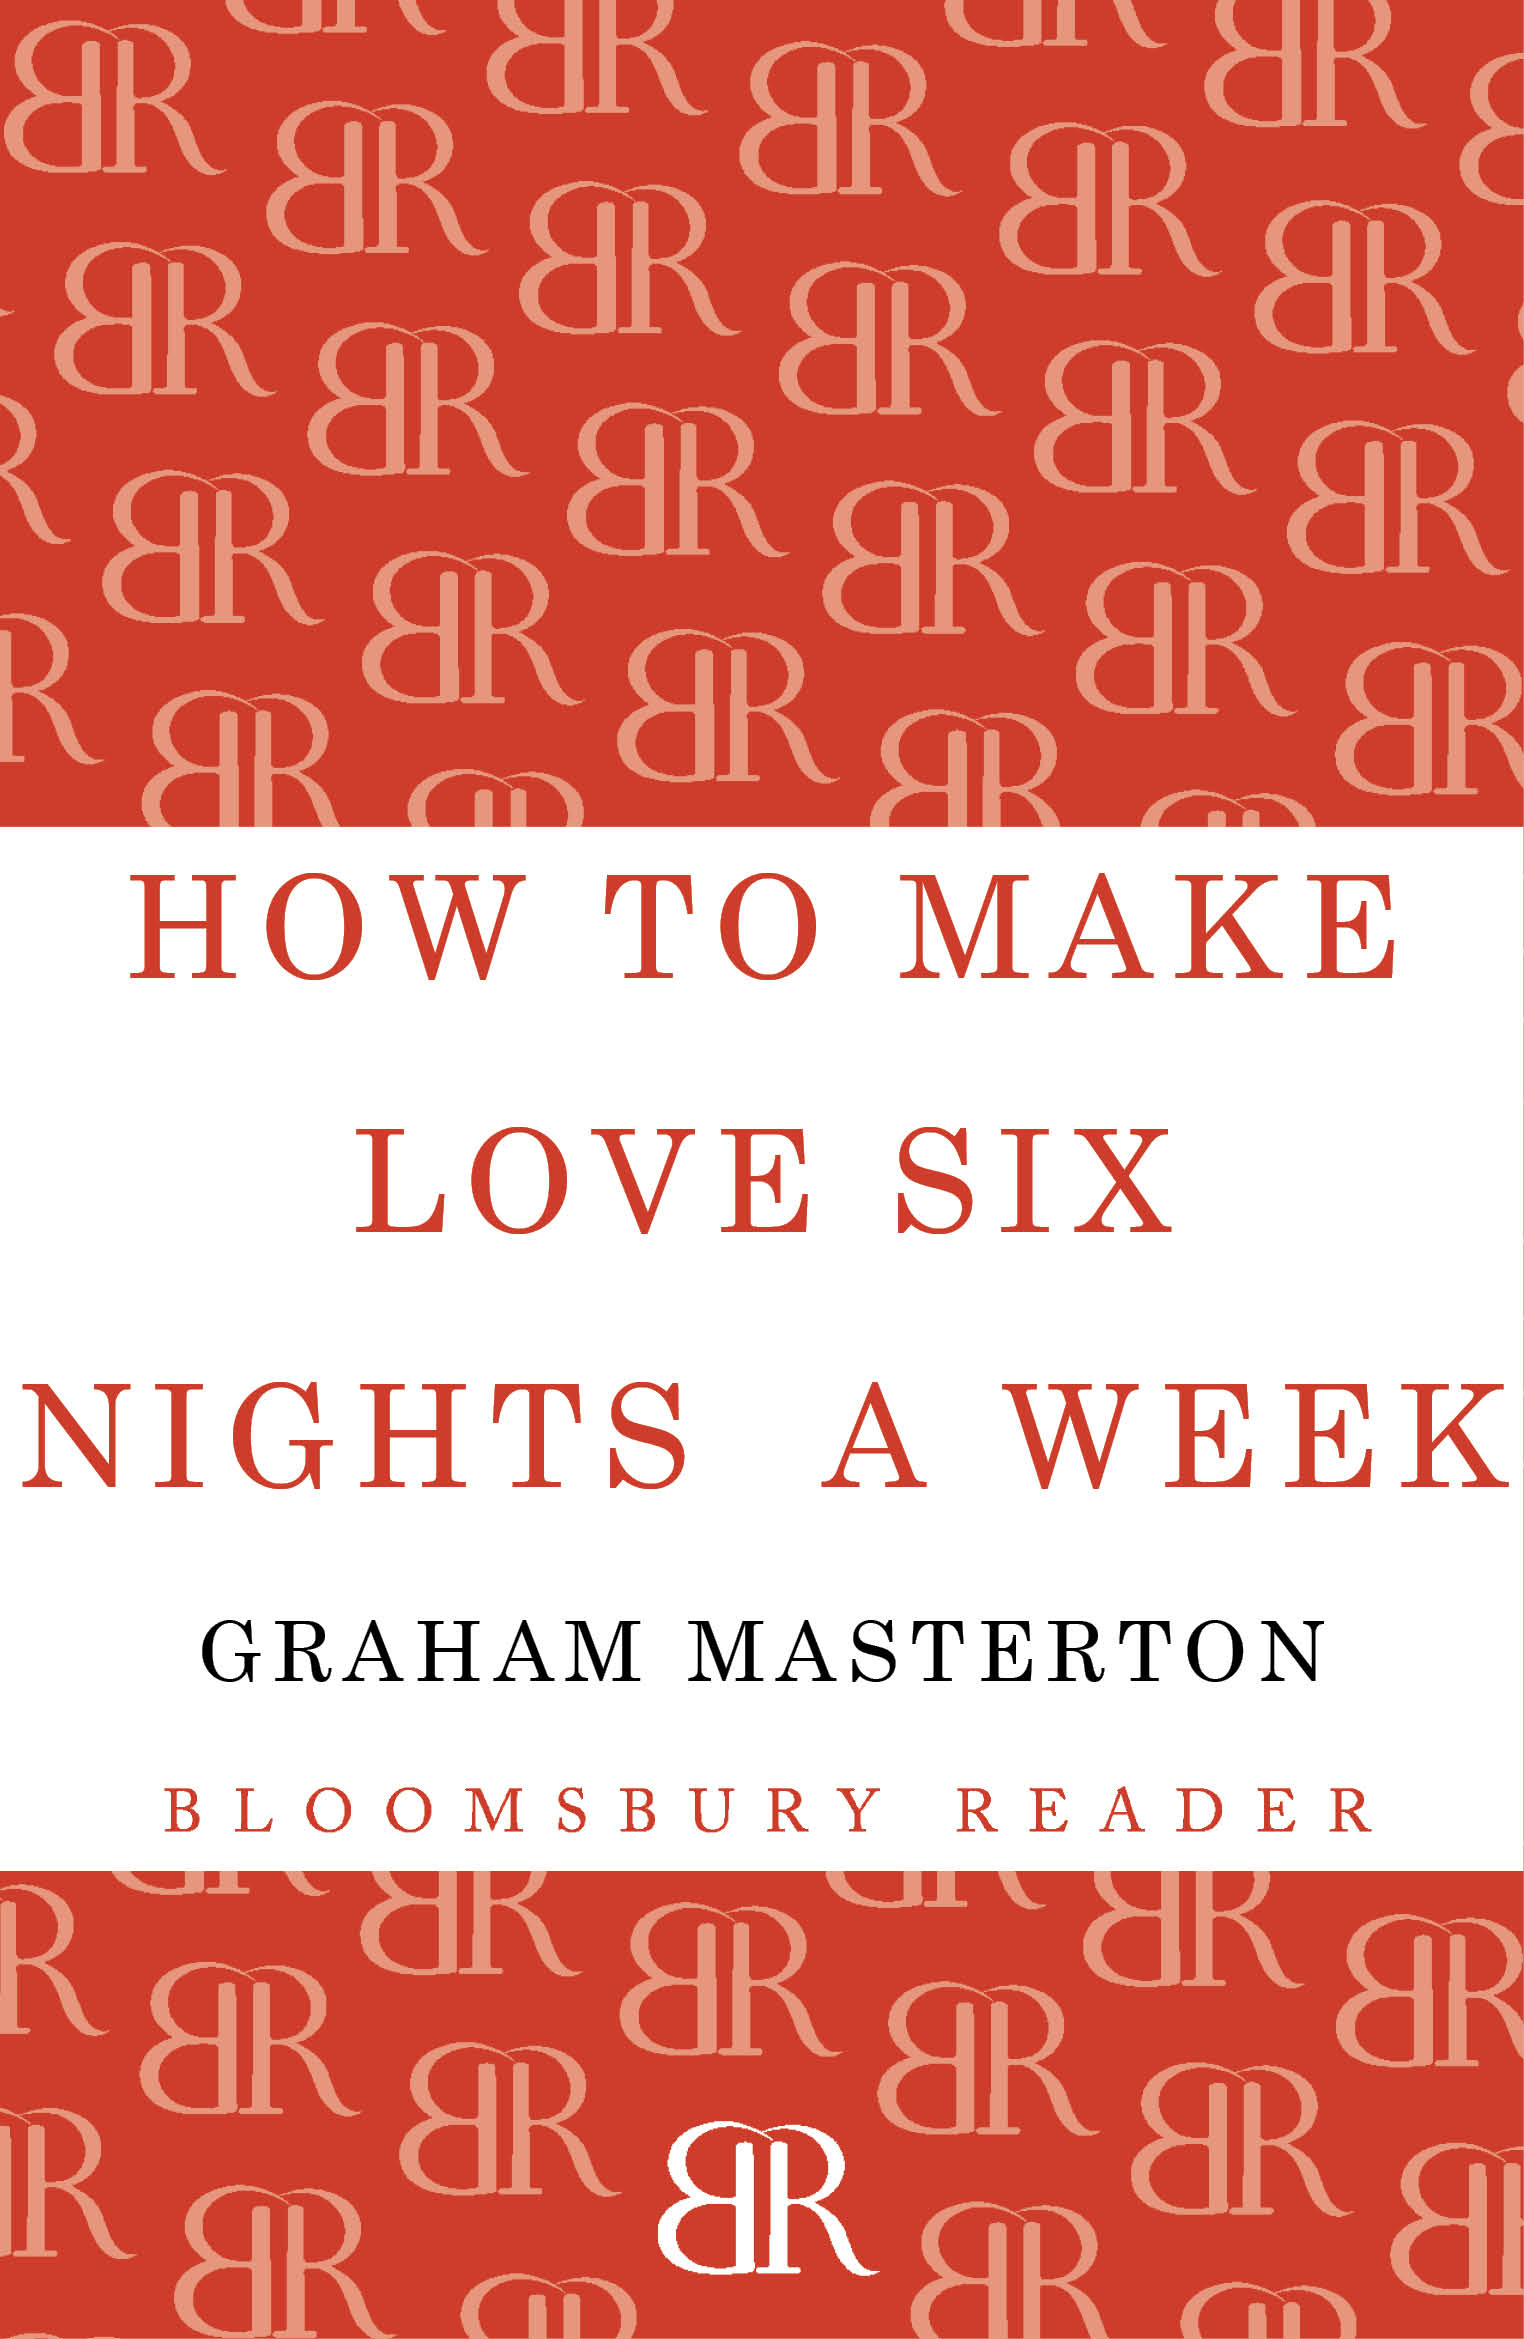 How to Make Love Six Nights A Week By: Graham Masterton